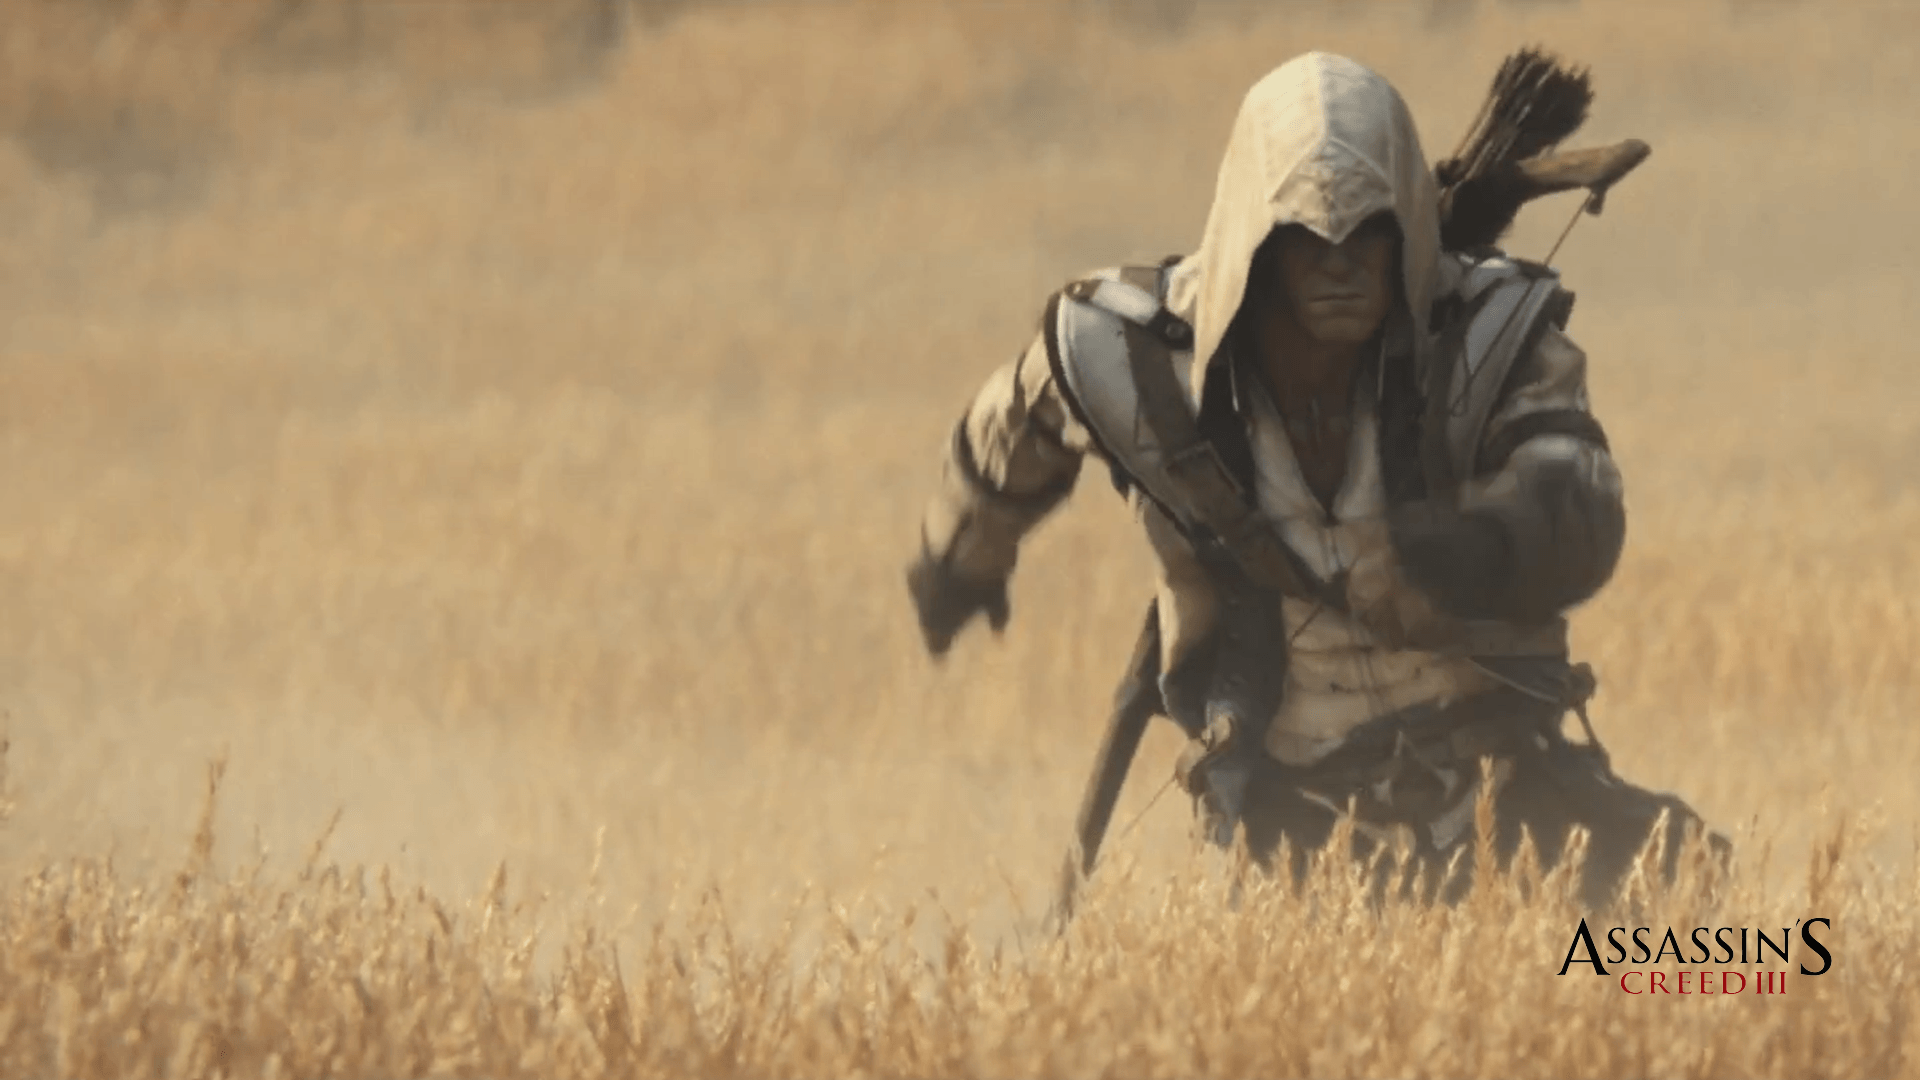 Assassins creed ignite the revolution Wallpapers HDWallpapers